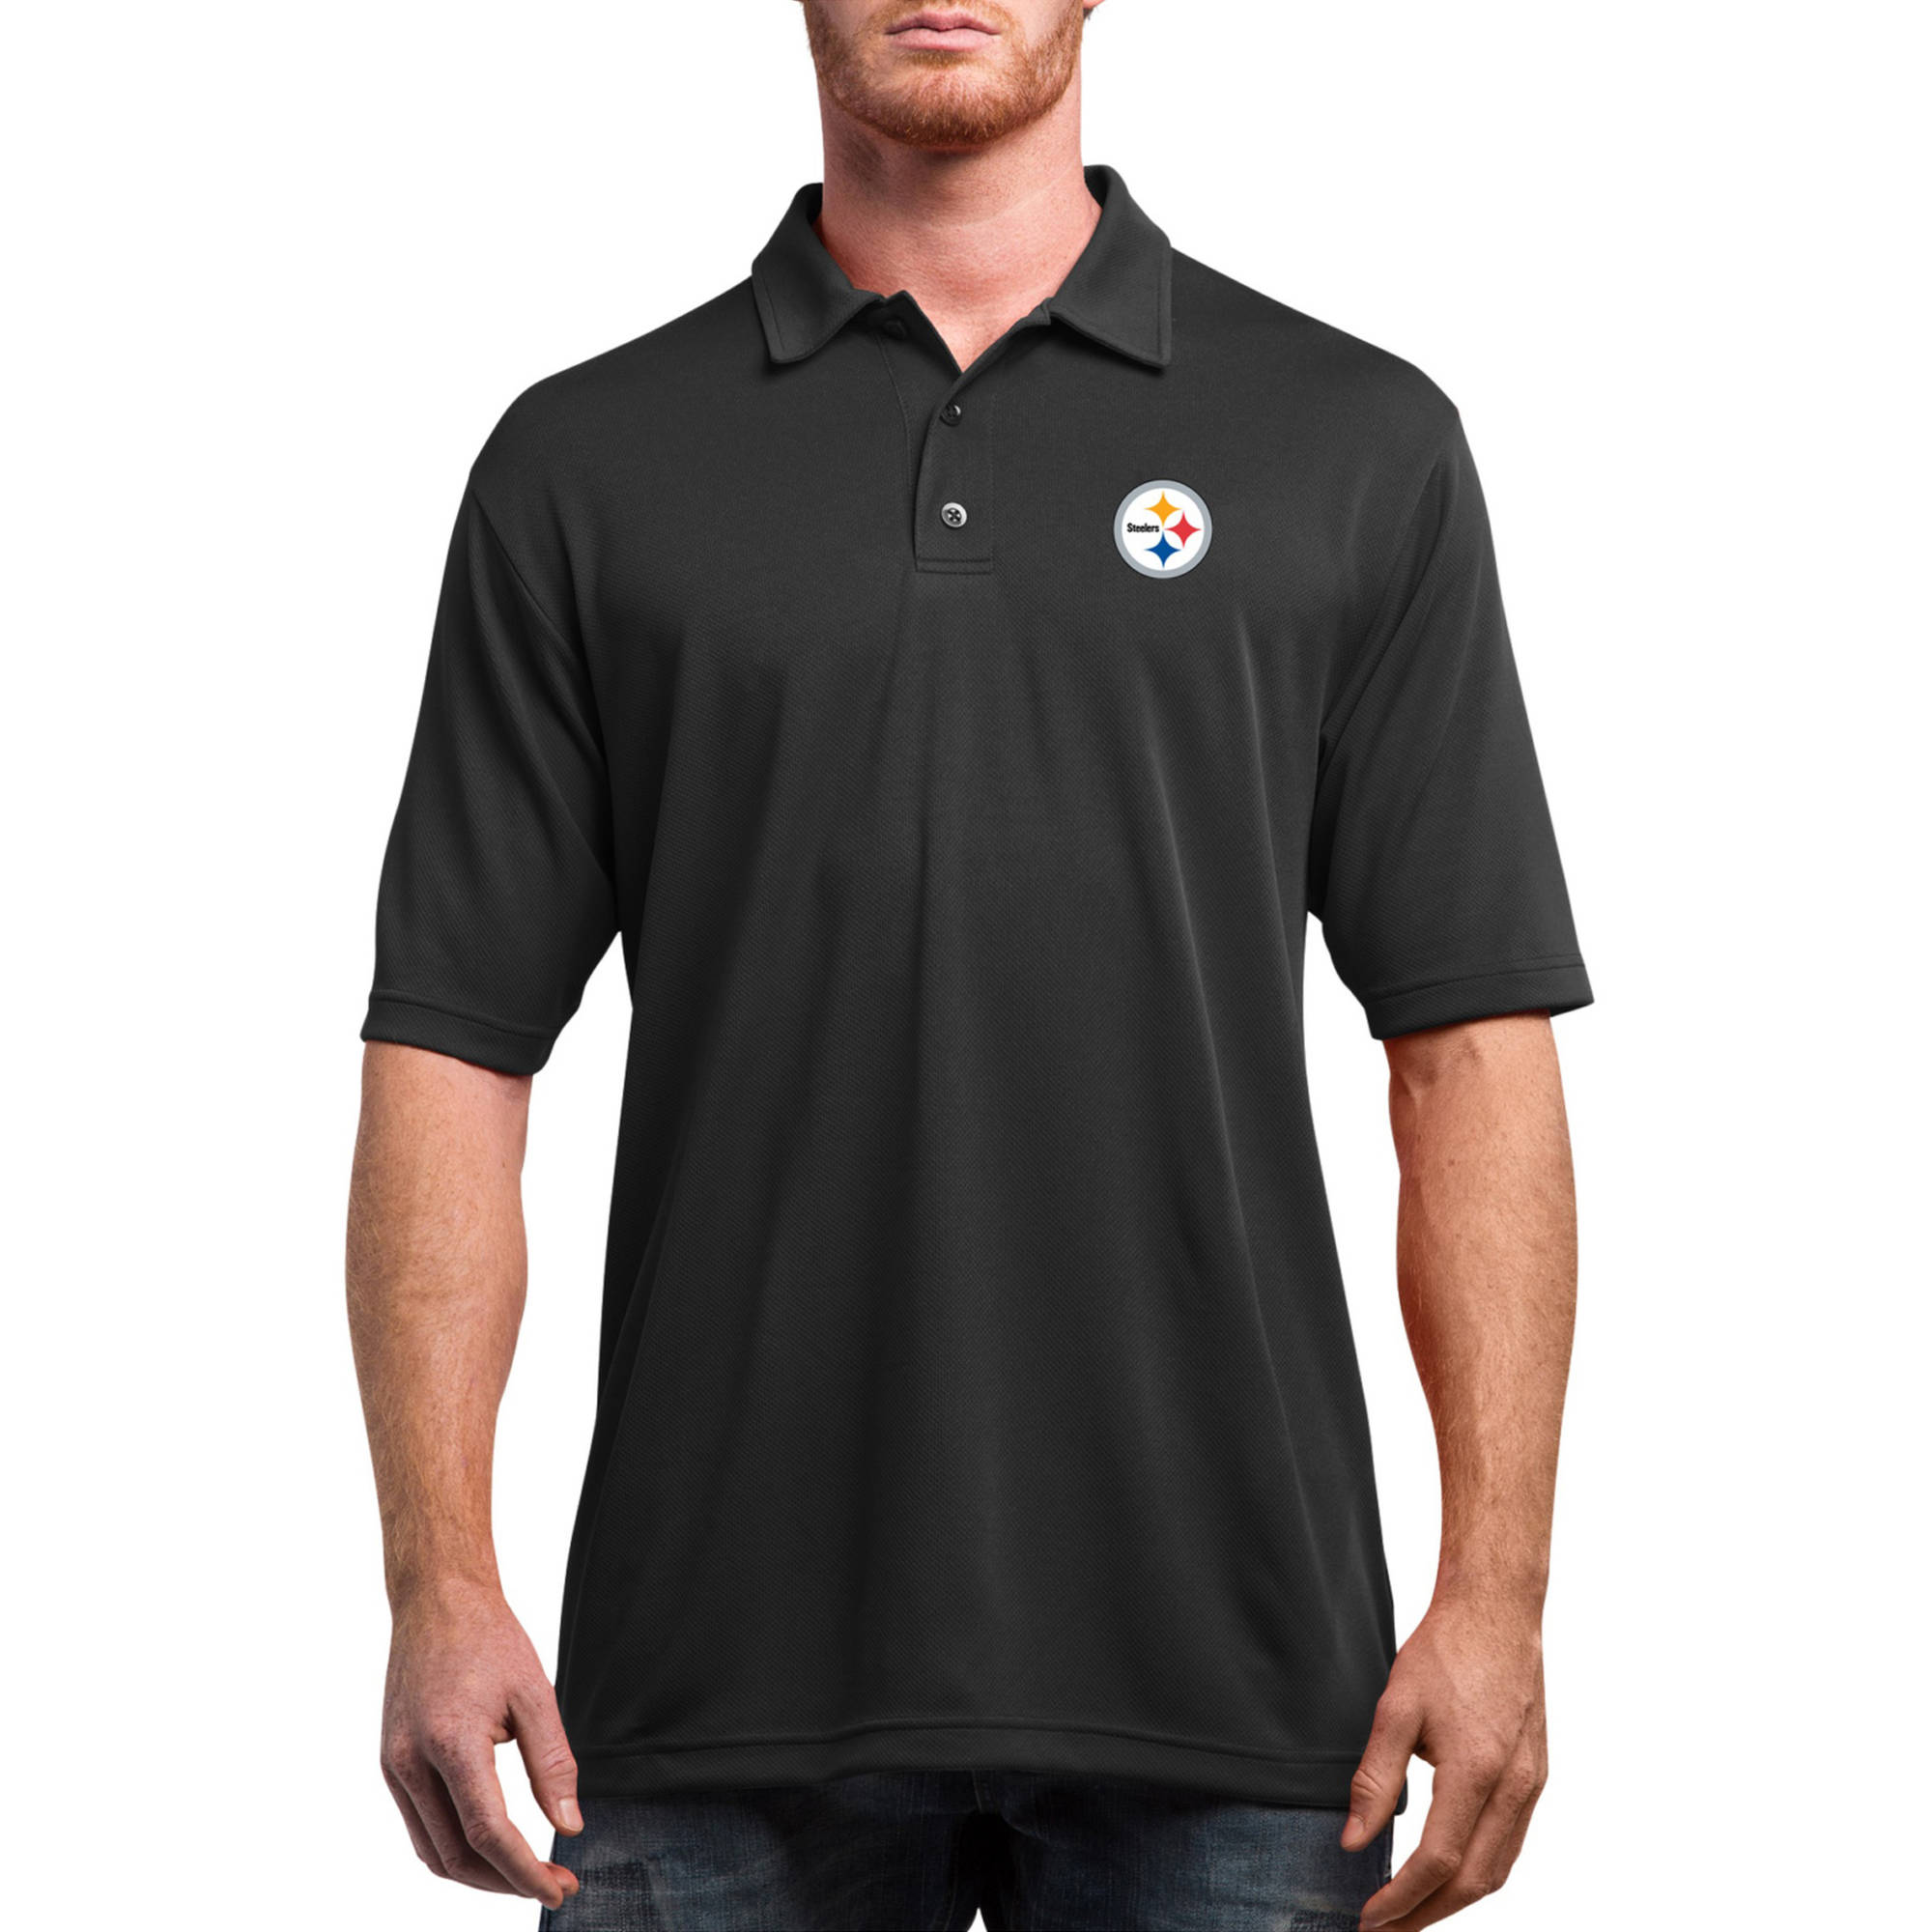 NFL Pittsburgh Steelers On to the Win Men's Big and Tall Short Sleeve Polo